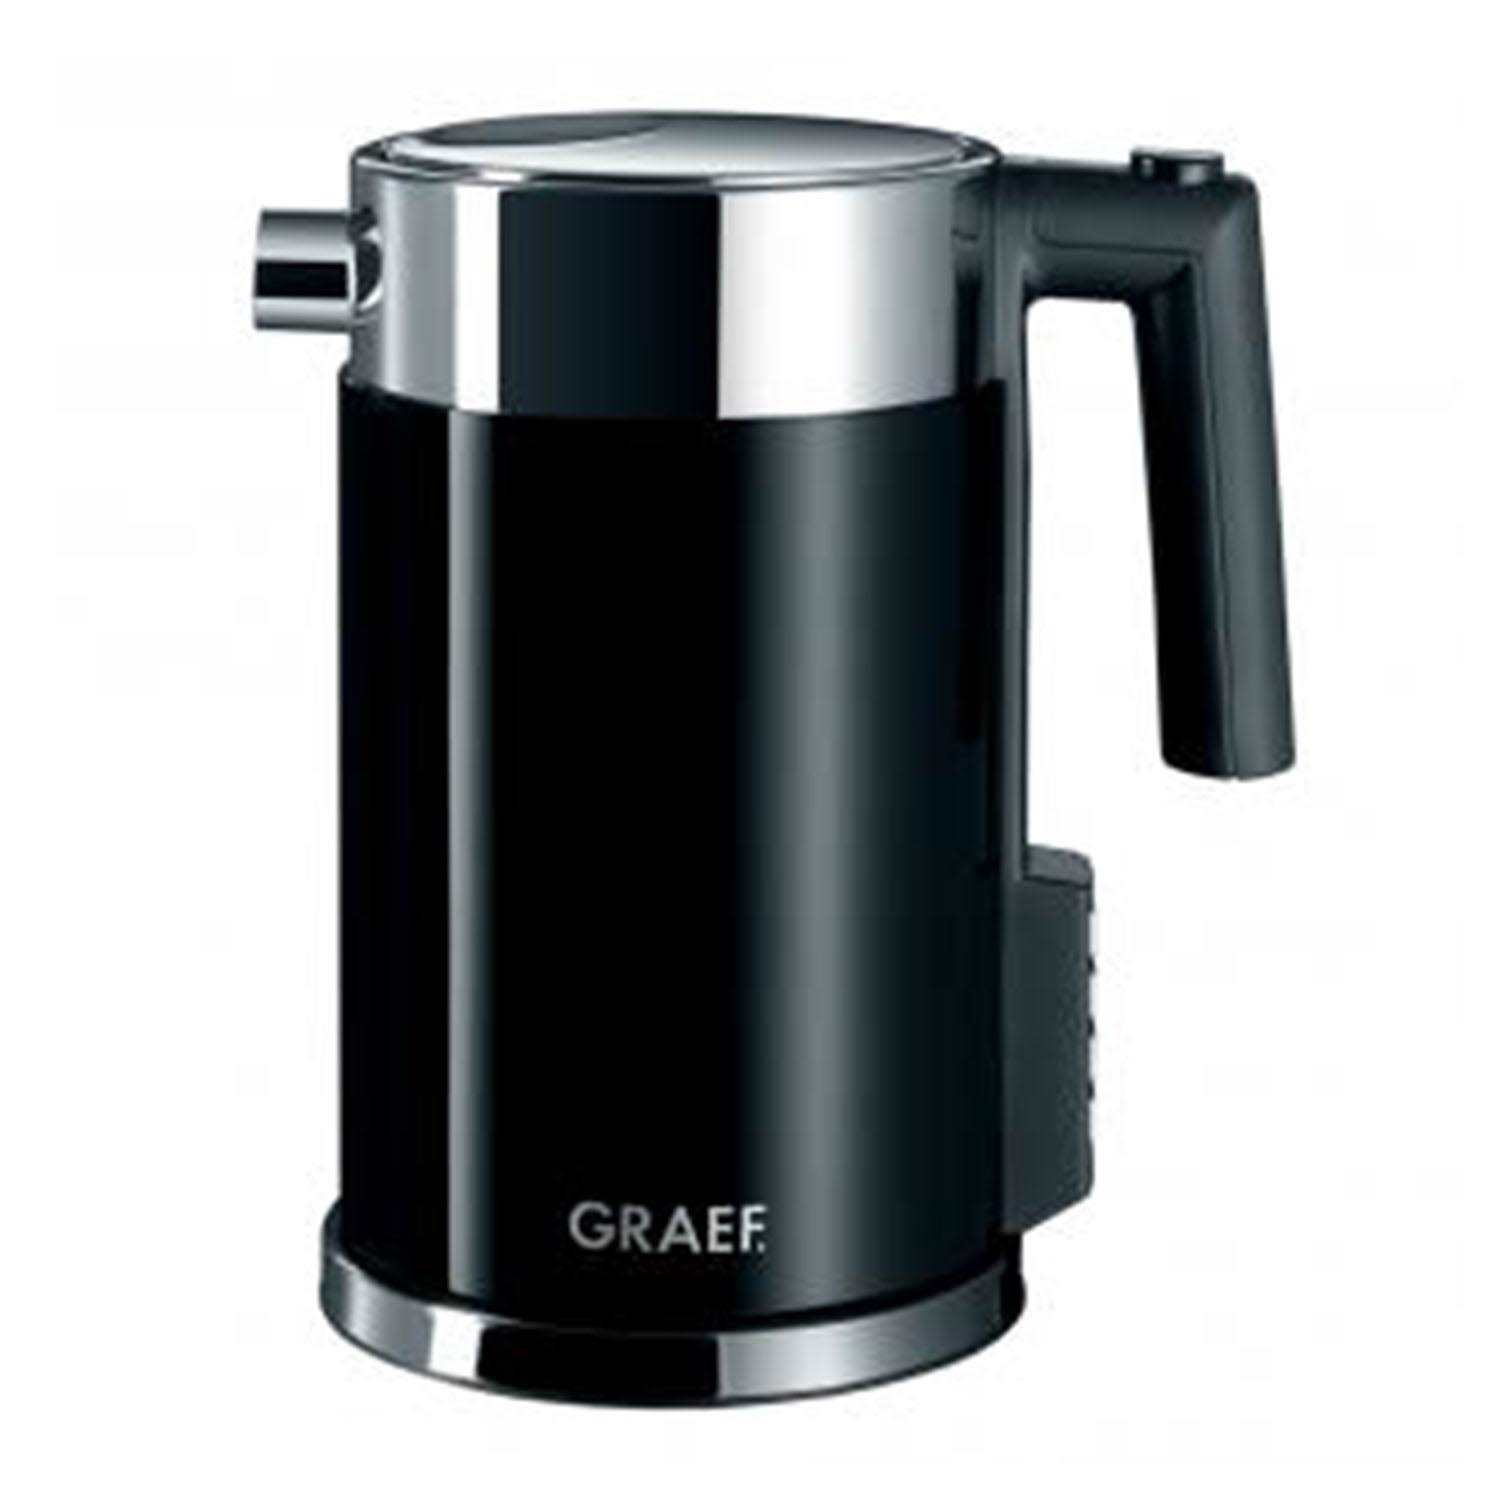 Graef Stainless Steel Electric Kettle 1.5l black